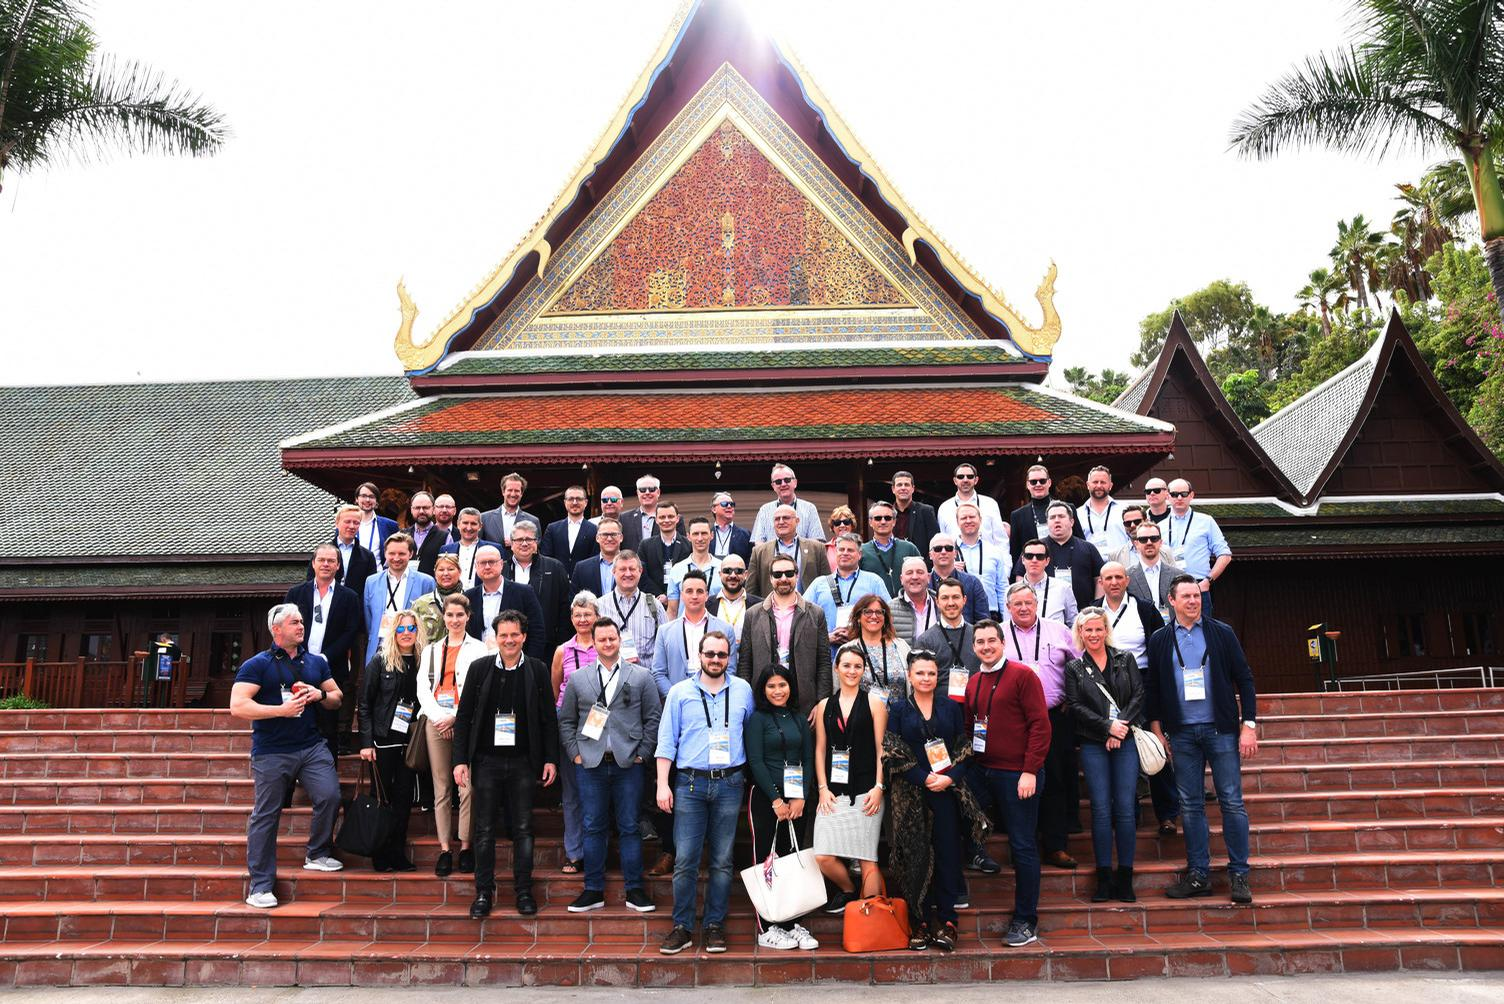 More than 60 attractions professionals attended the IAPPA Winter Forum in the Canary Islands / IAAPA